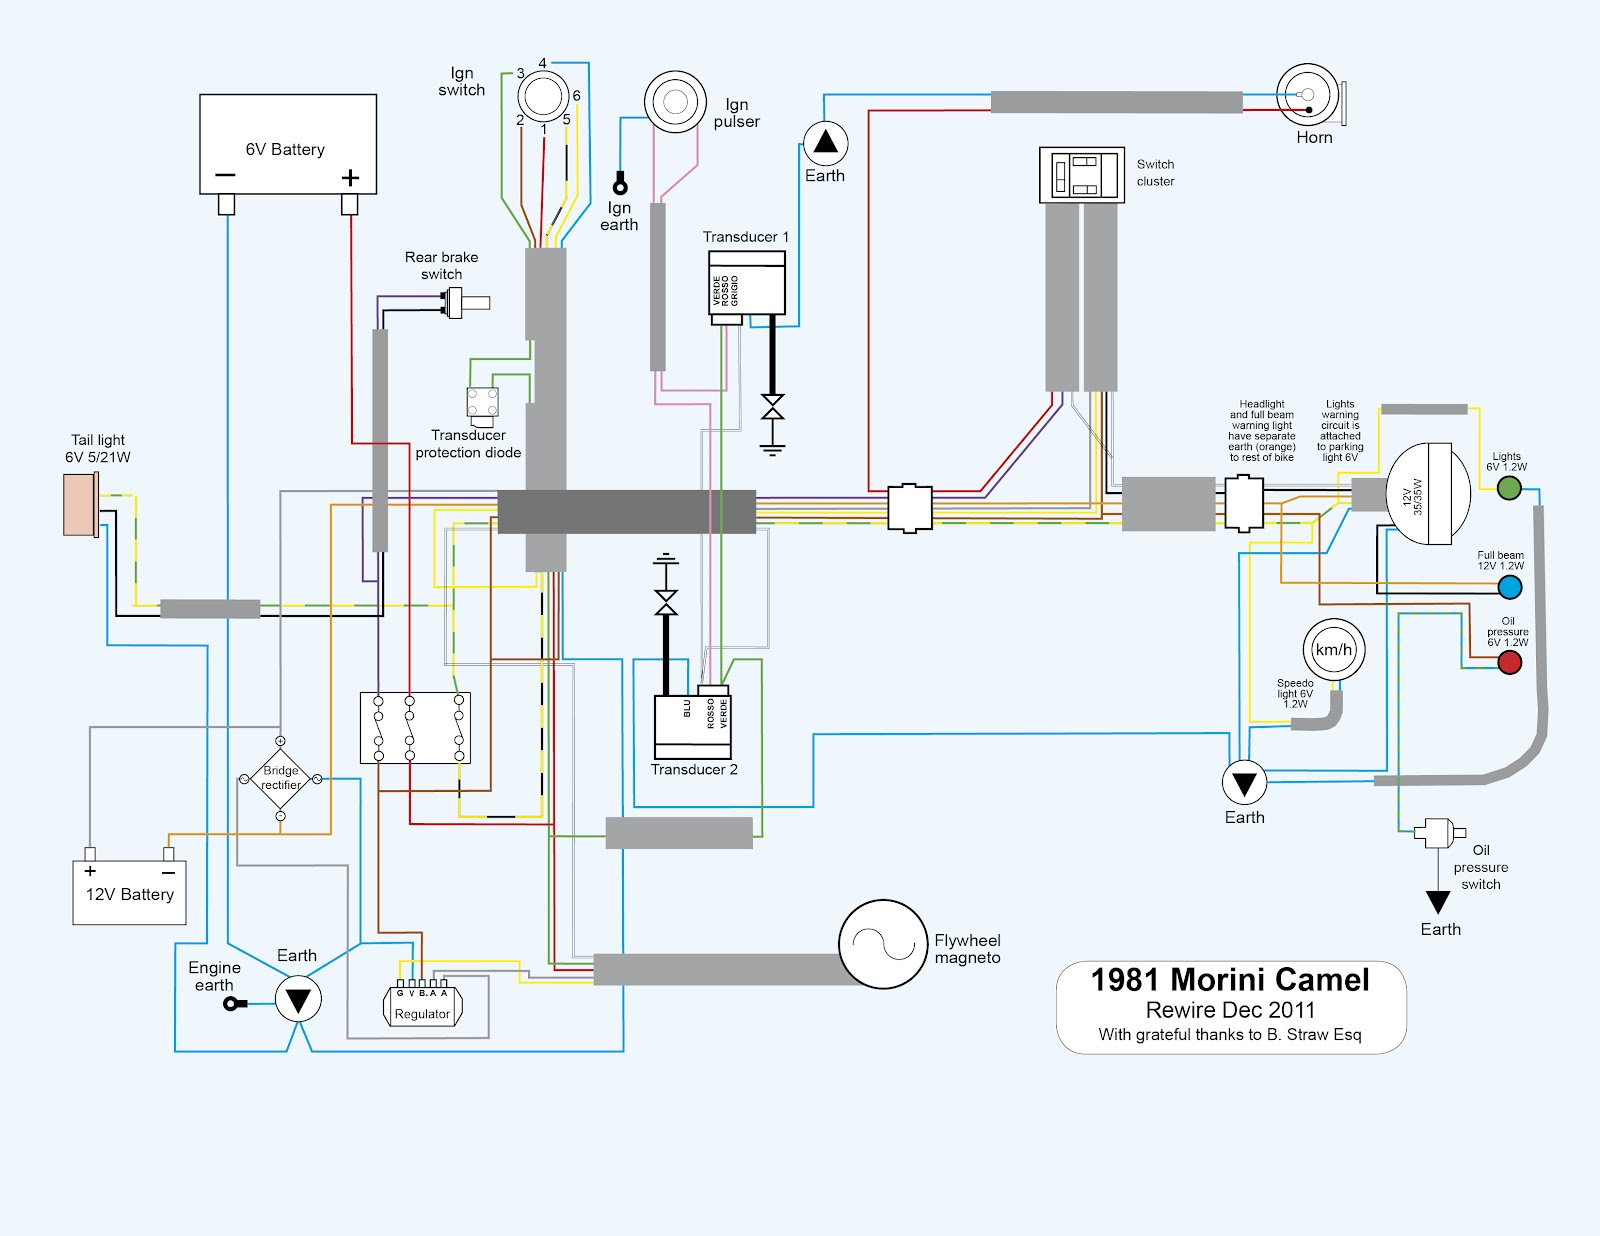 Royal Enfield Bullet Wiring Diagram Animal Cell Without Labels 350 Somurich